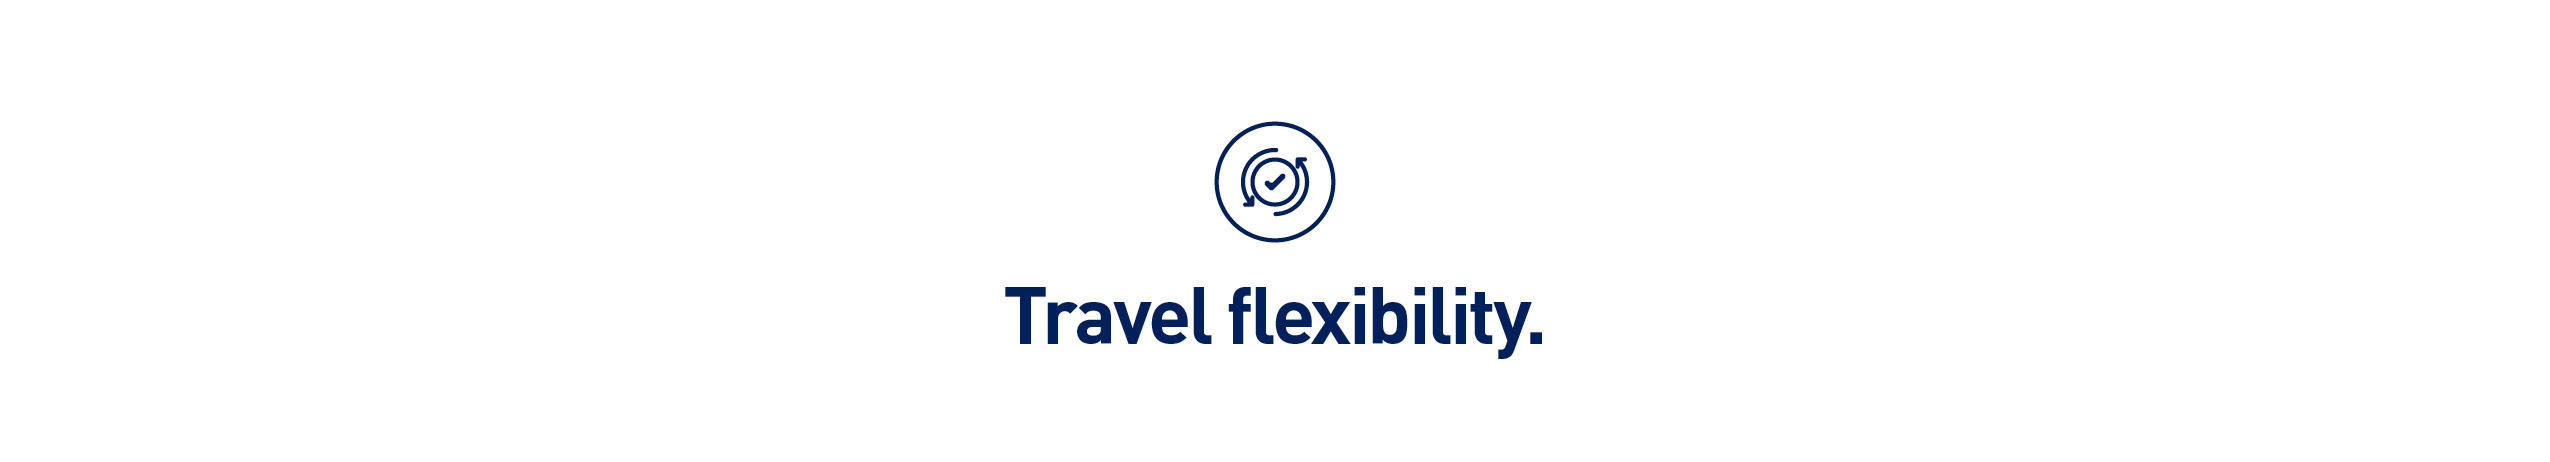 travel flexibility